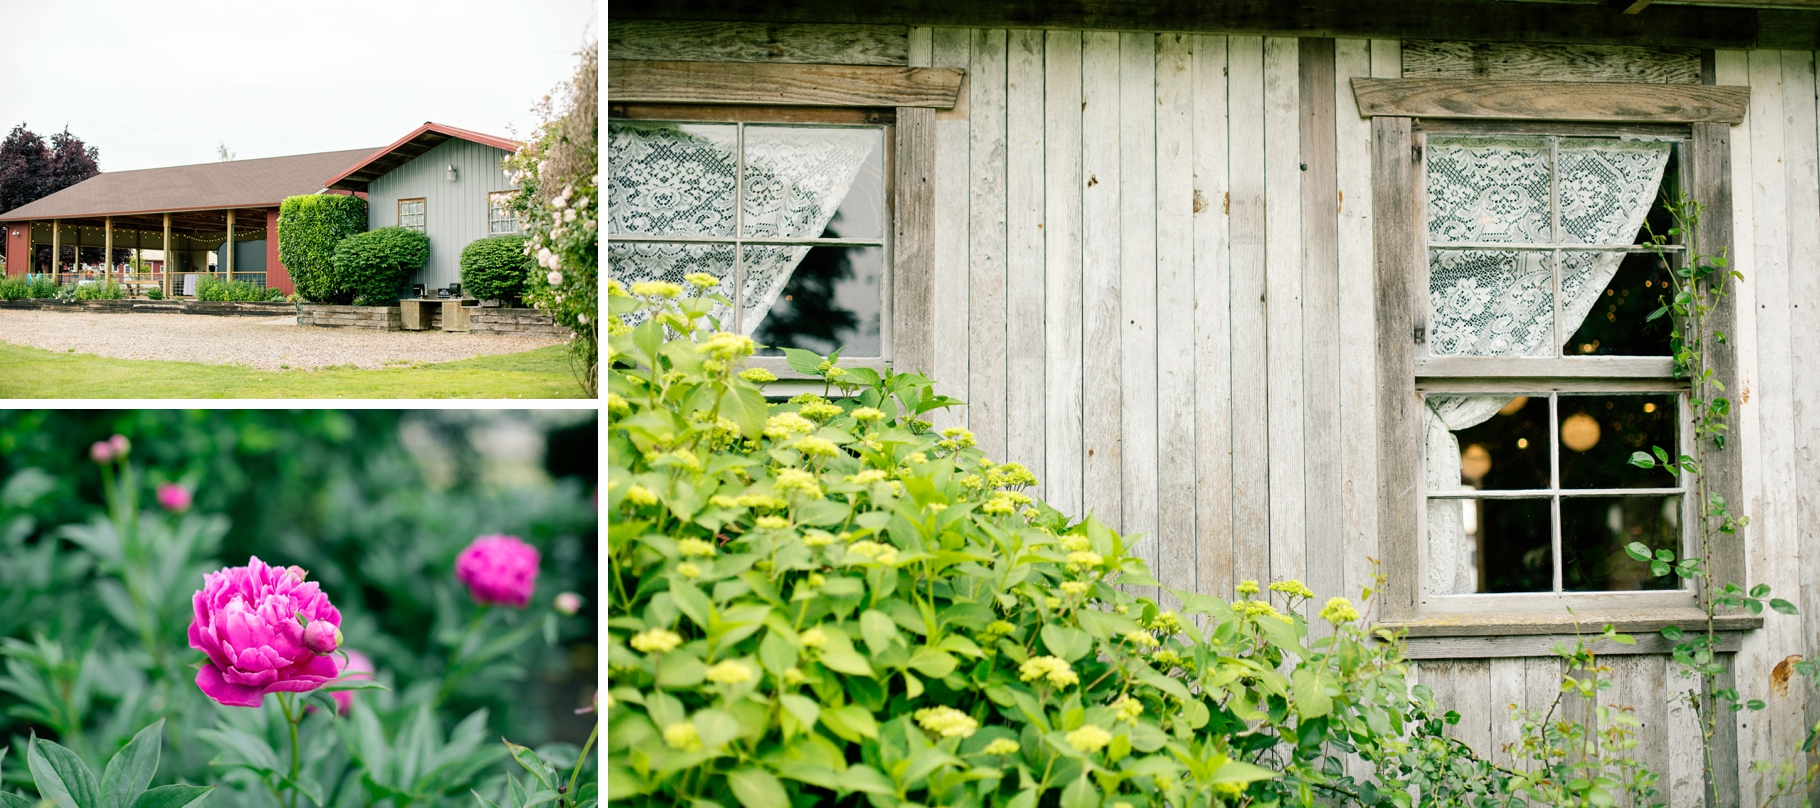 8-Craven-Farm-Barn-Reception-Peony-Countryside-Snohomish-Wedding-Tour-Seattle-Photographer-Photography-by-Betty-Elaine